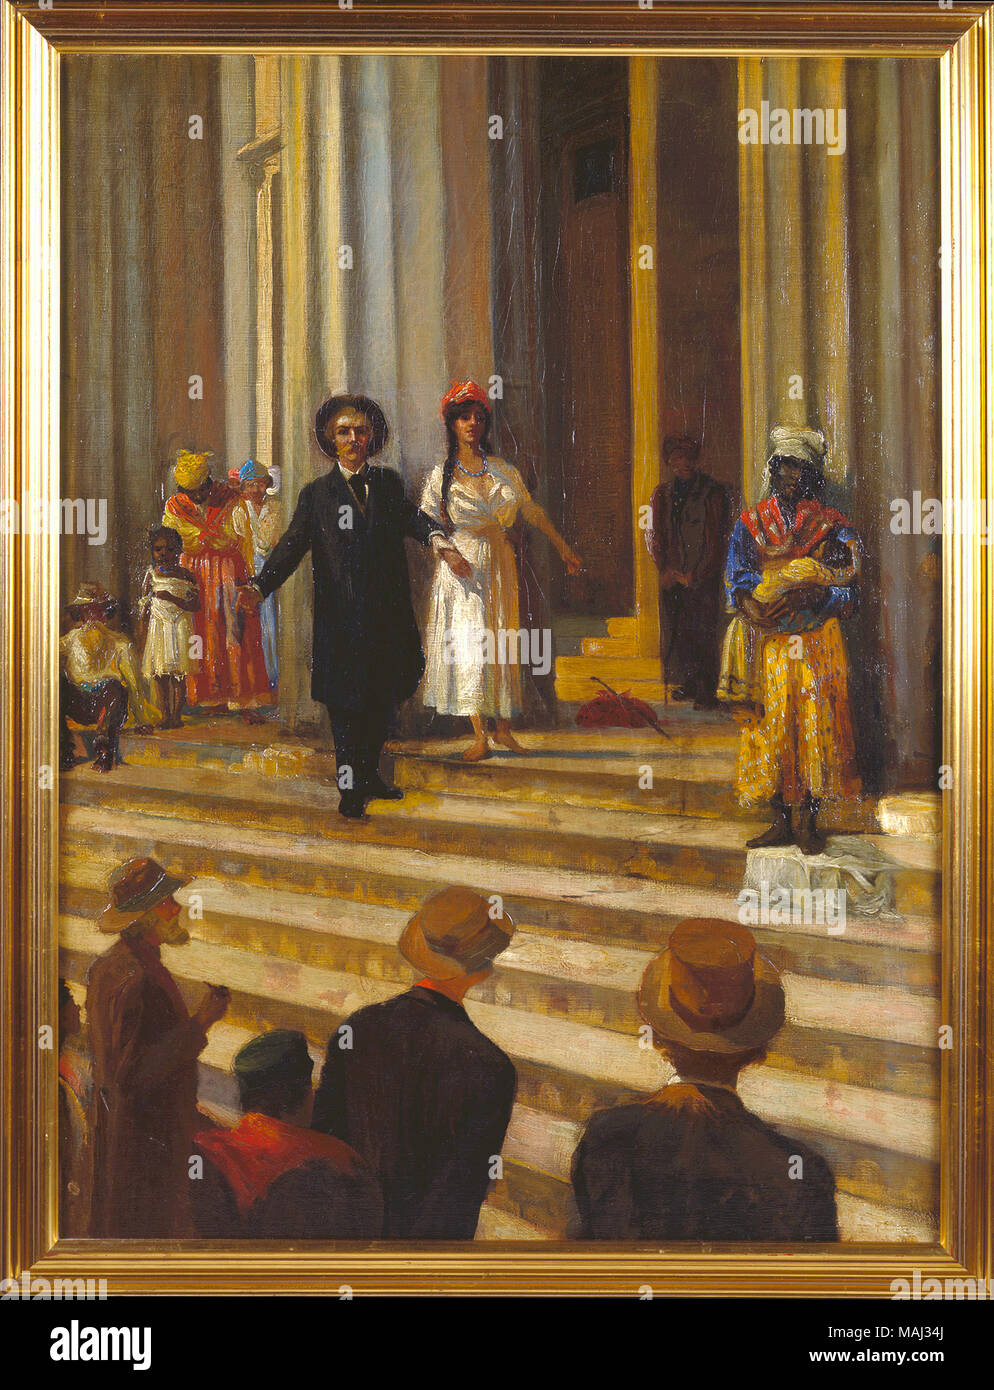 Painting of one of the last slave sales in St. Louis, based on a description from 'The Crisis,' a novel by St. Louisan Winston Churchill. Title: Painting of a Slave Sale in St. Louis  . 1908. M. Hermandez Arevalo - Stock Image